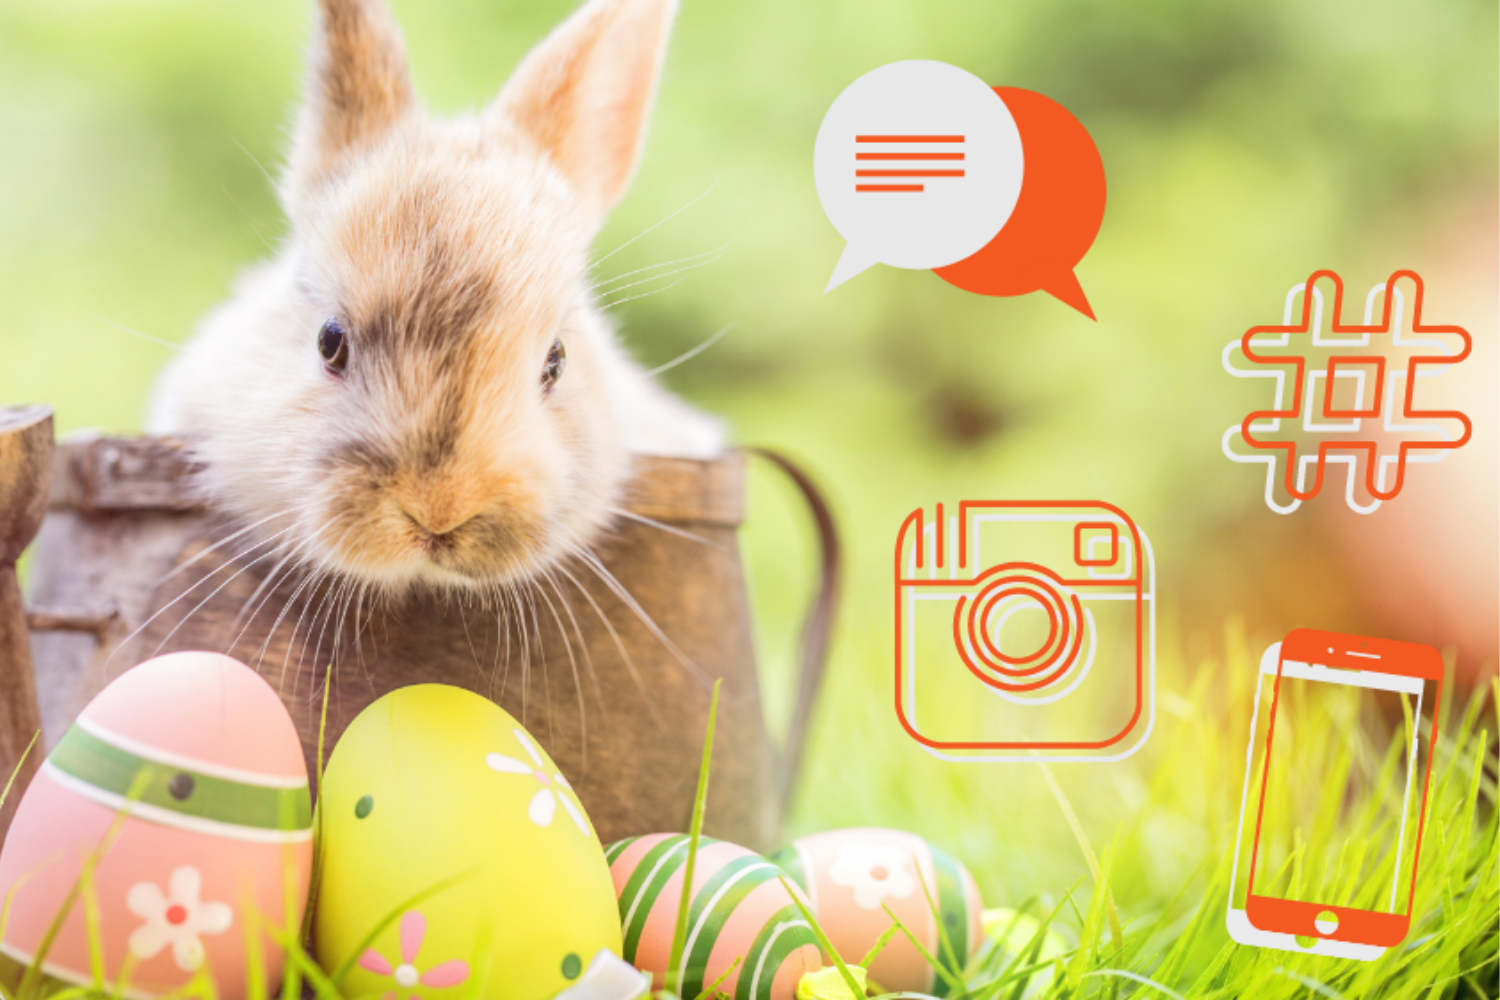 An Easter bunny next to social media icons | EXCELLENT.ORG